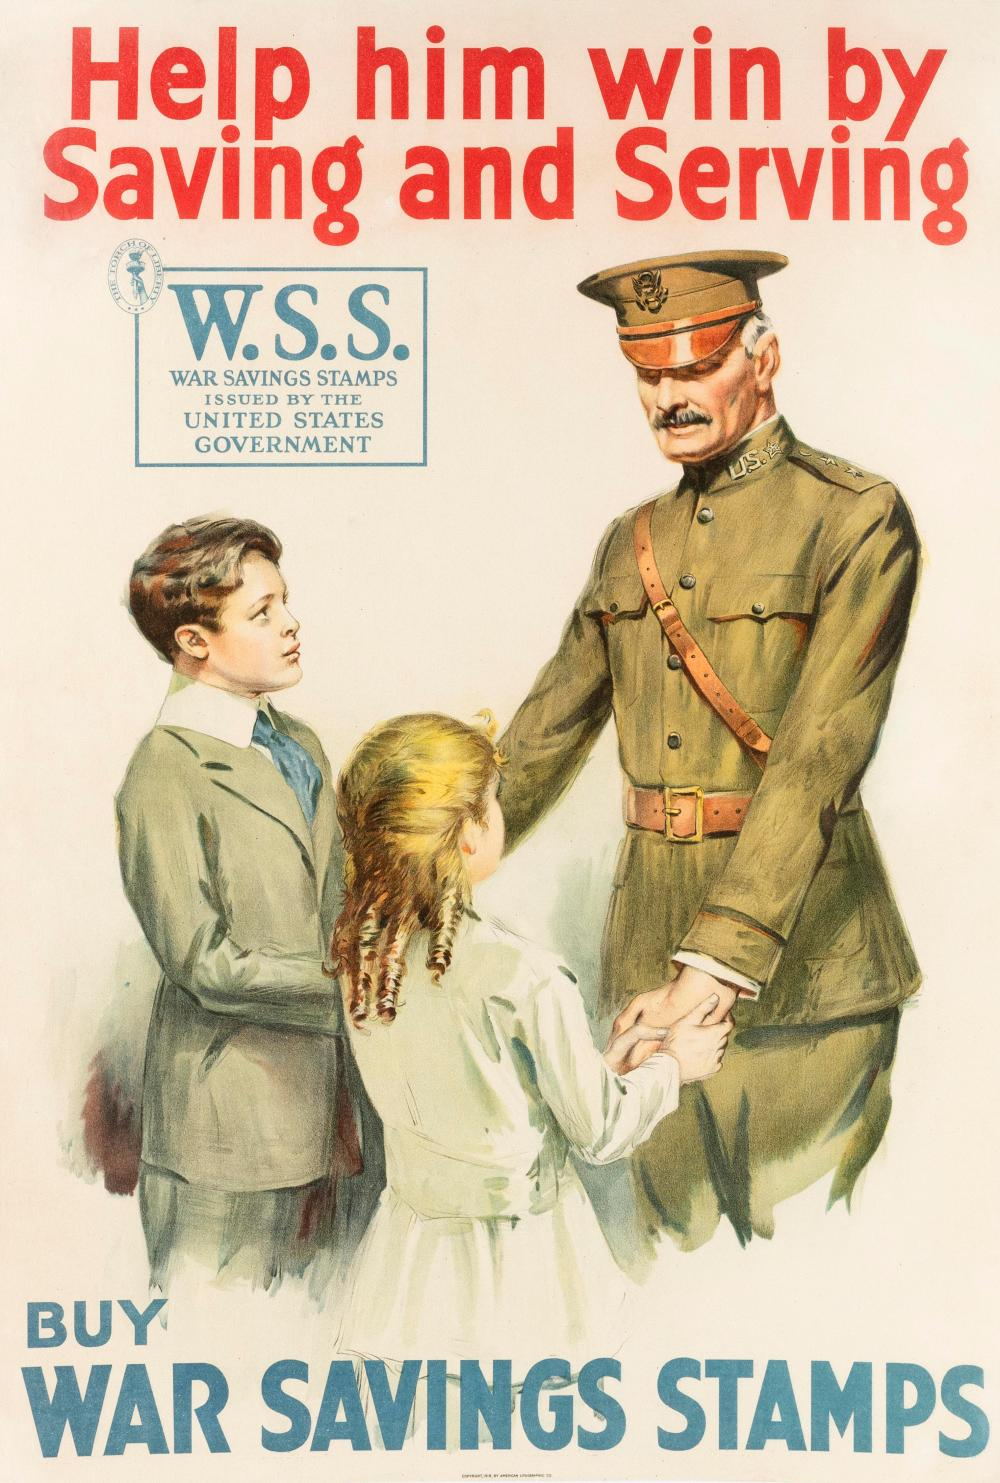 """""""HELP HIM WIN BY SAVING AND SERVING BUY WAR SAVINGS STAMPS"""" WORLD WAR I POSTER Published by the American Lithographic Co. Depicts a..."""